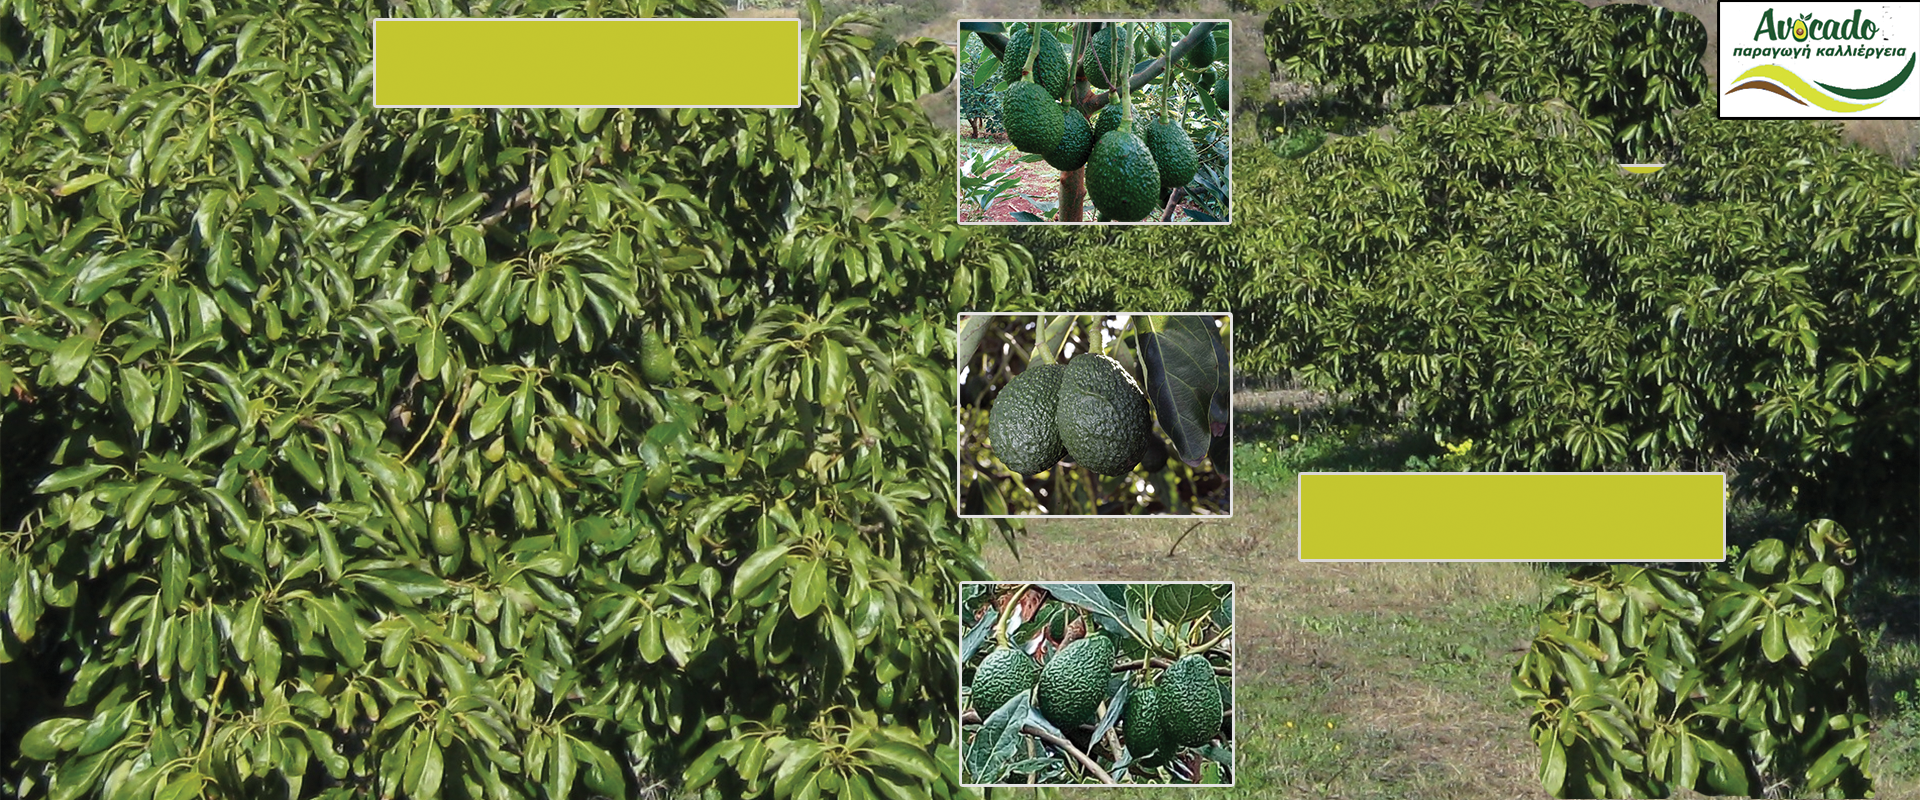 Avocado, Home, avocado nursery europe-Greece